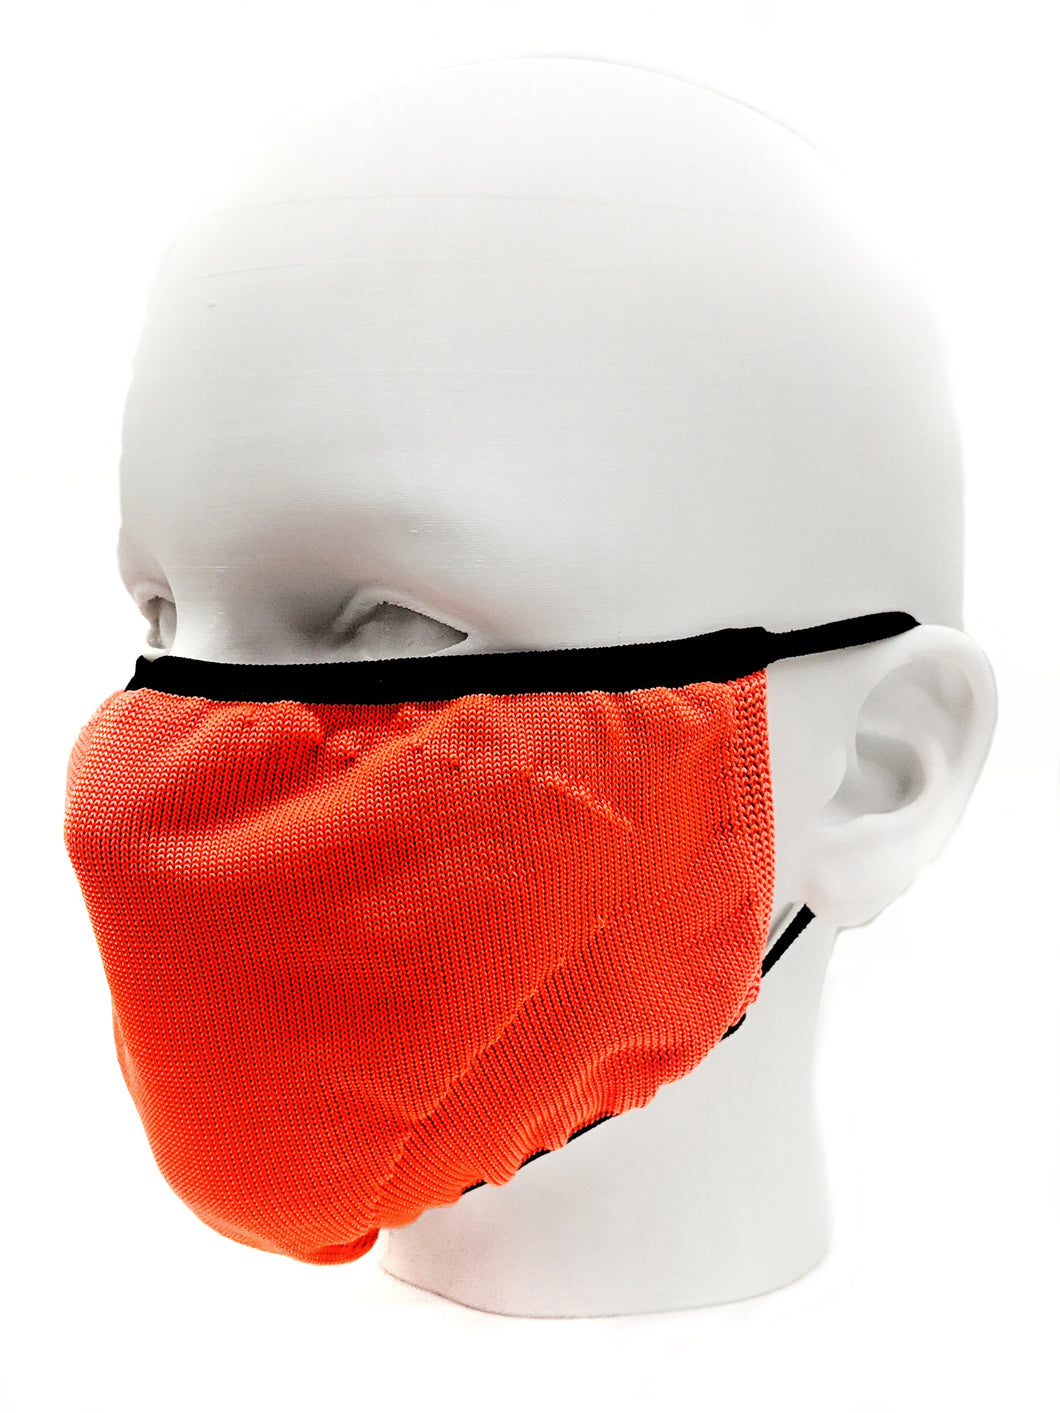 Flex Plus Mask - Pack of 2